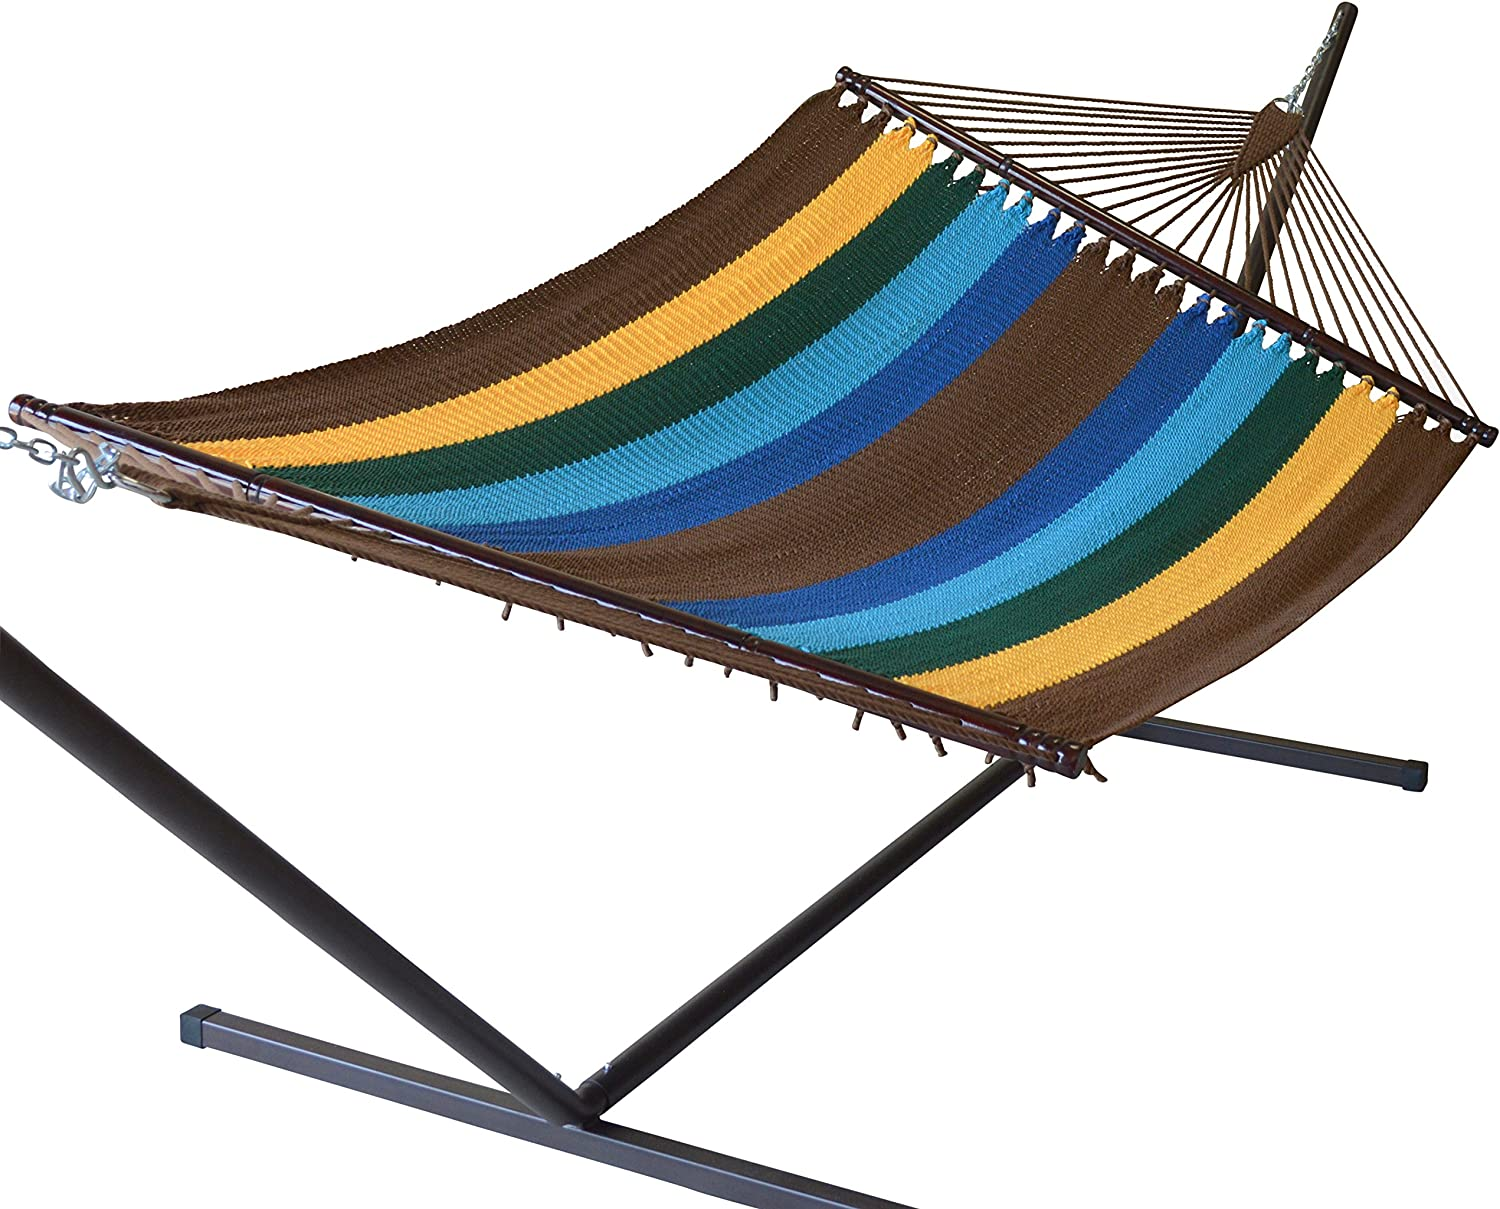 "Caribbean Hammocks 55"" Wide Jumbo Caribbean Hammock - Multi Color Yellow - 600 lb Weight Capacity"